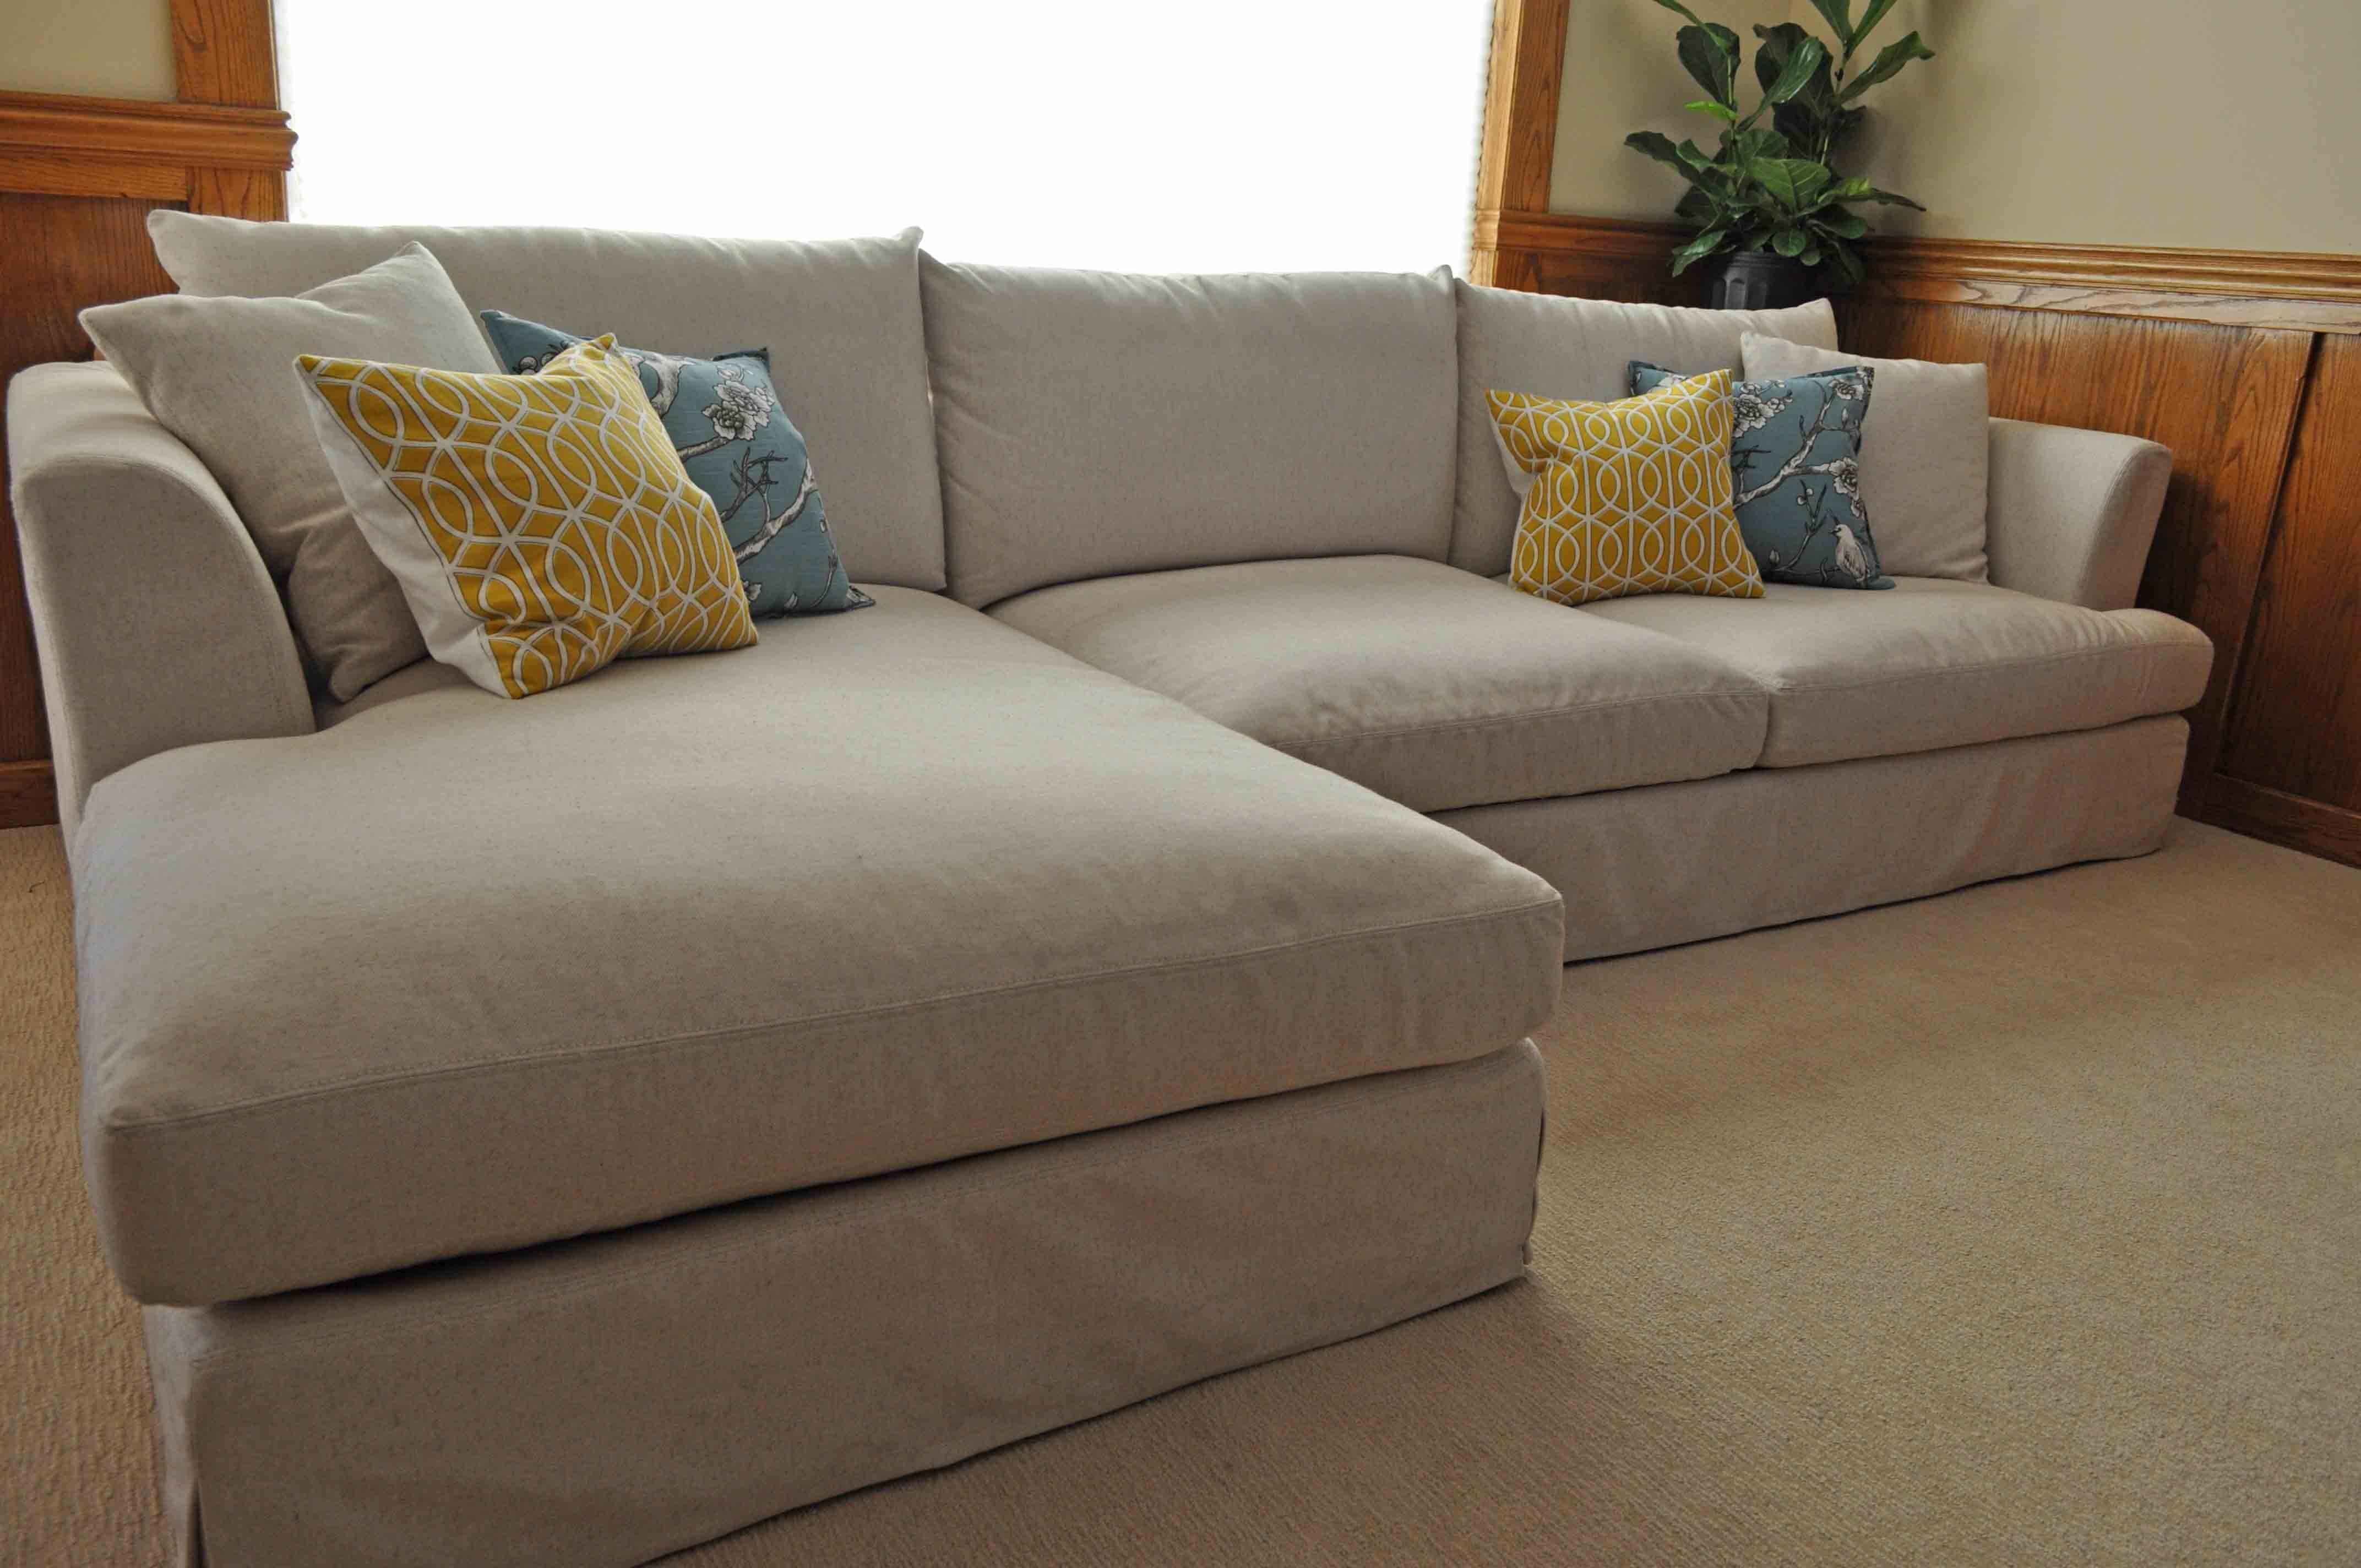 Widely Used Deep Cushion Sofas In Couch: Ideas Comfy Couches Cozy Couch Inflatable, Big Comfy (View 20 of 20)